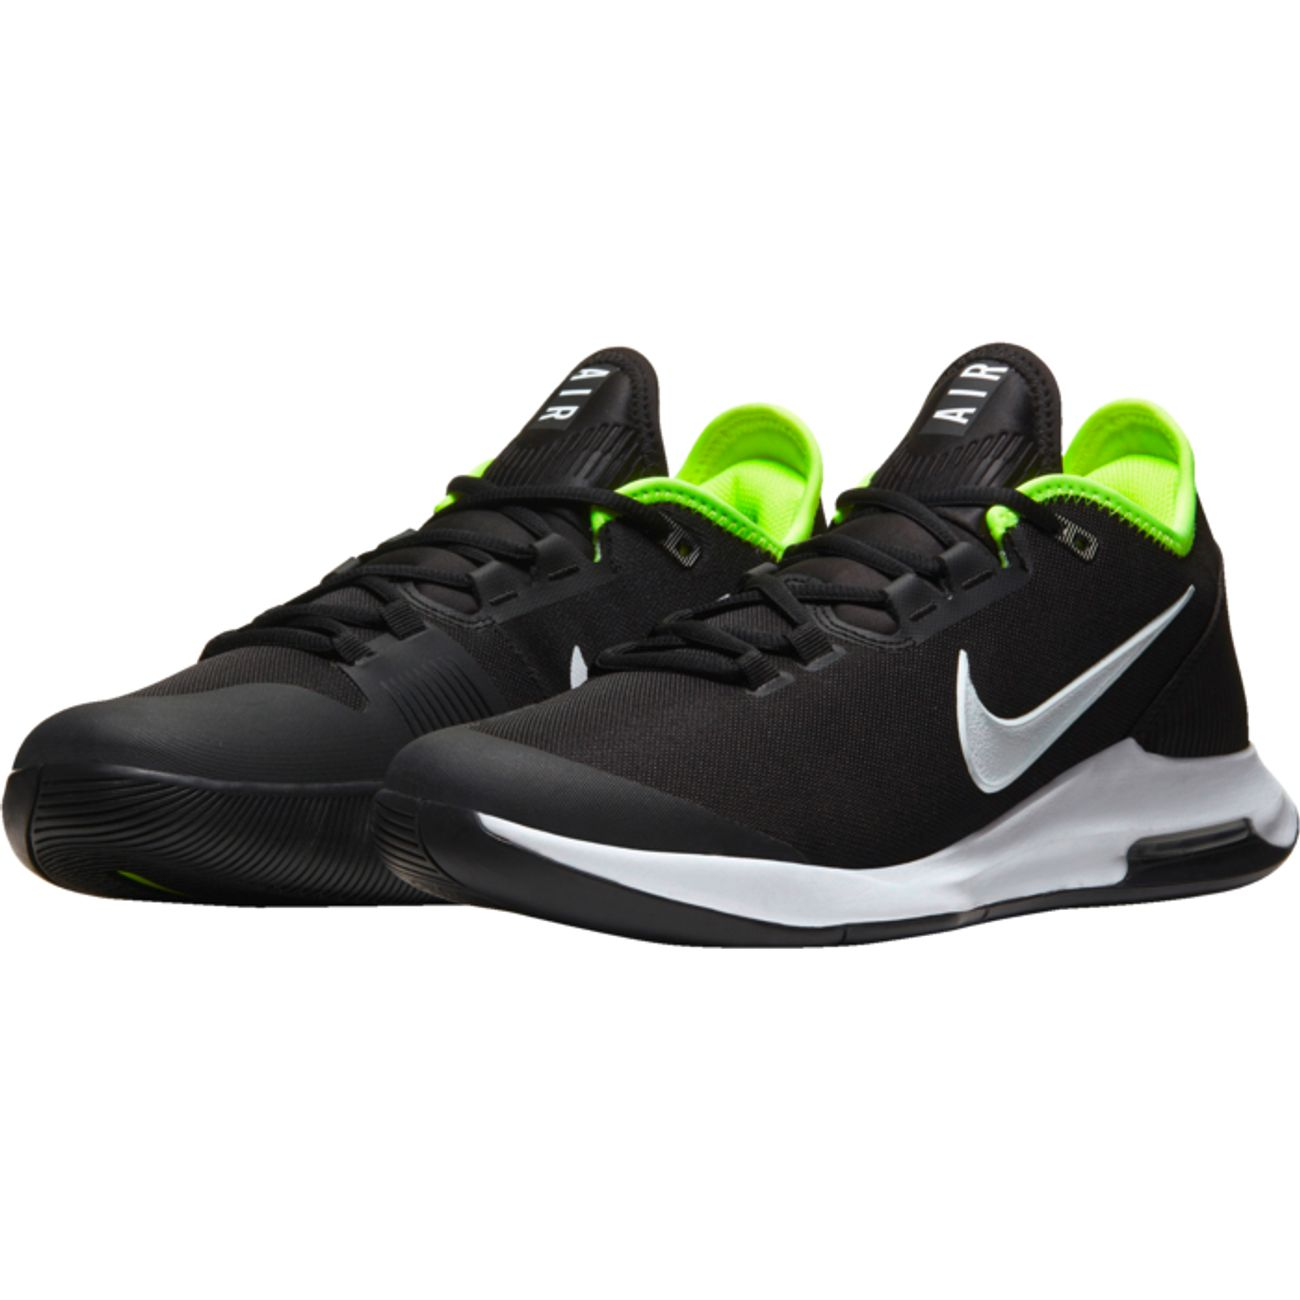 CHAUSSURES BASSES Tennis homme NIKE AIR MAX WILDCARD